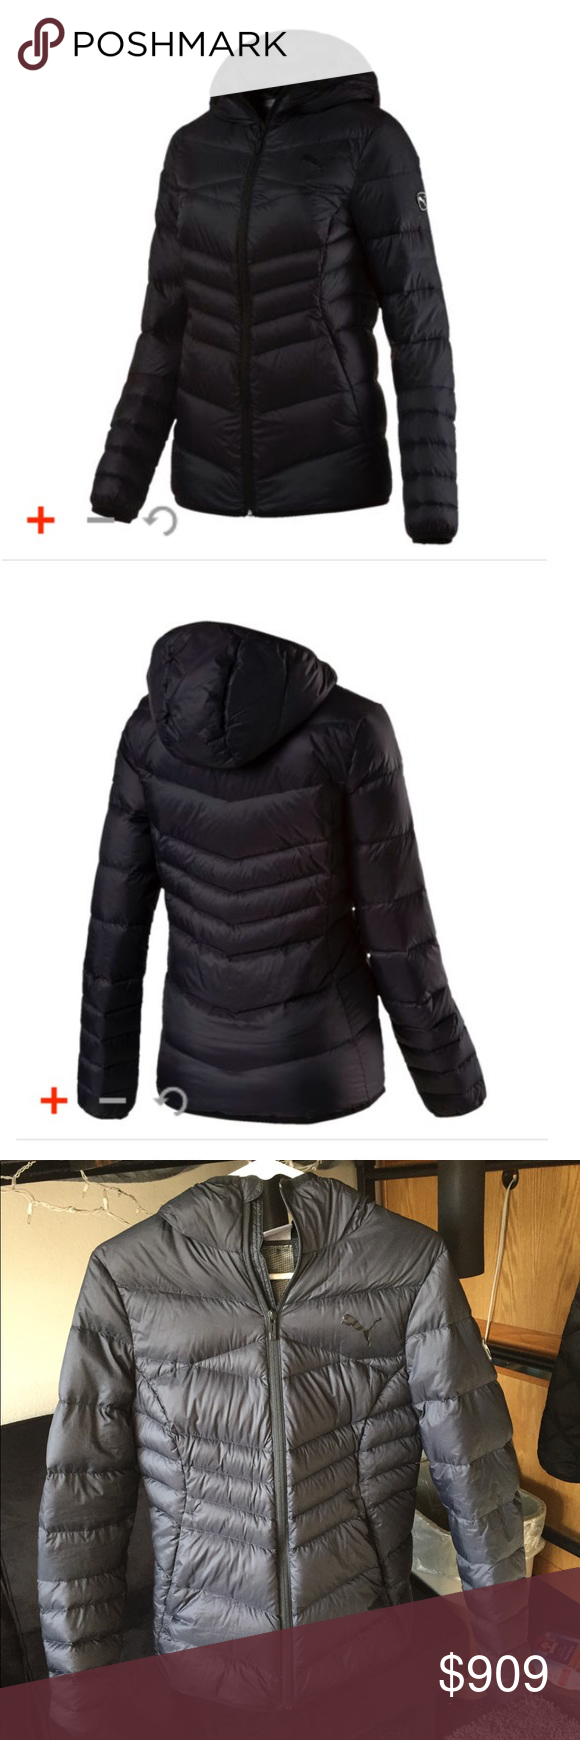 72e671094dea PUMA active 600 packLITE hooded down jacket Black down jacket from Puma.  Great for casual